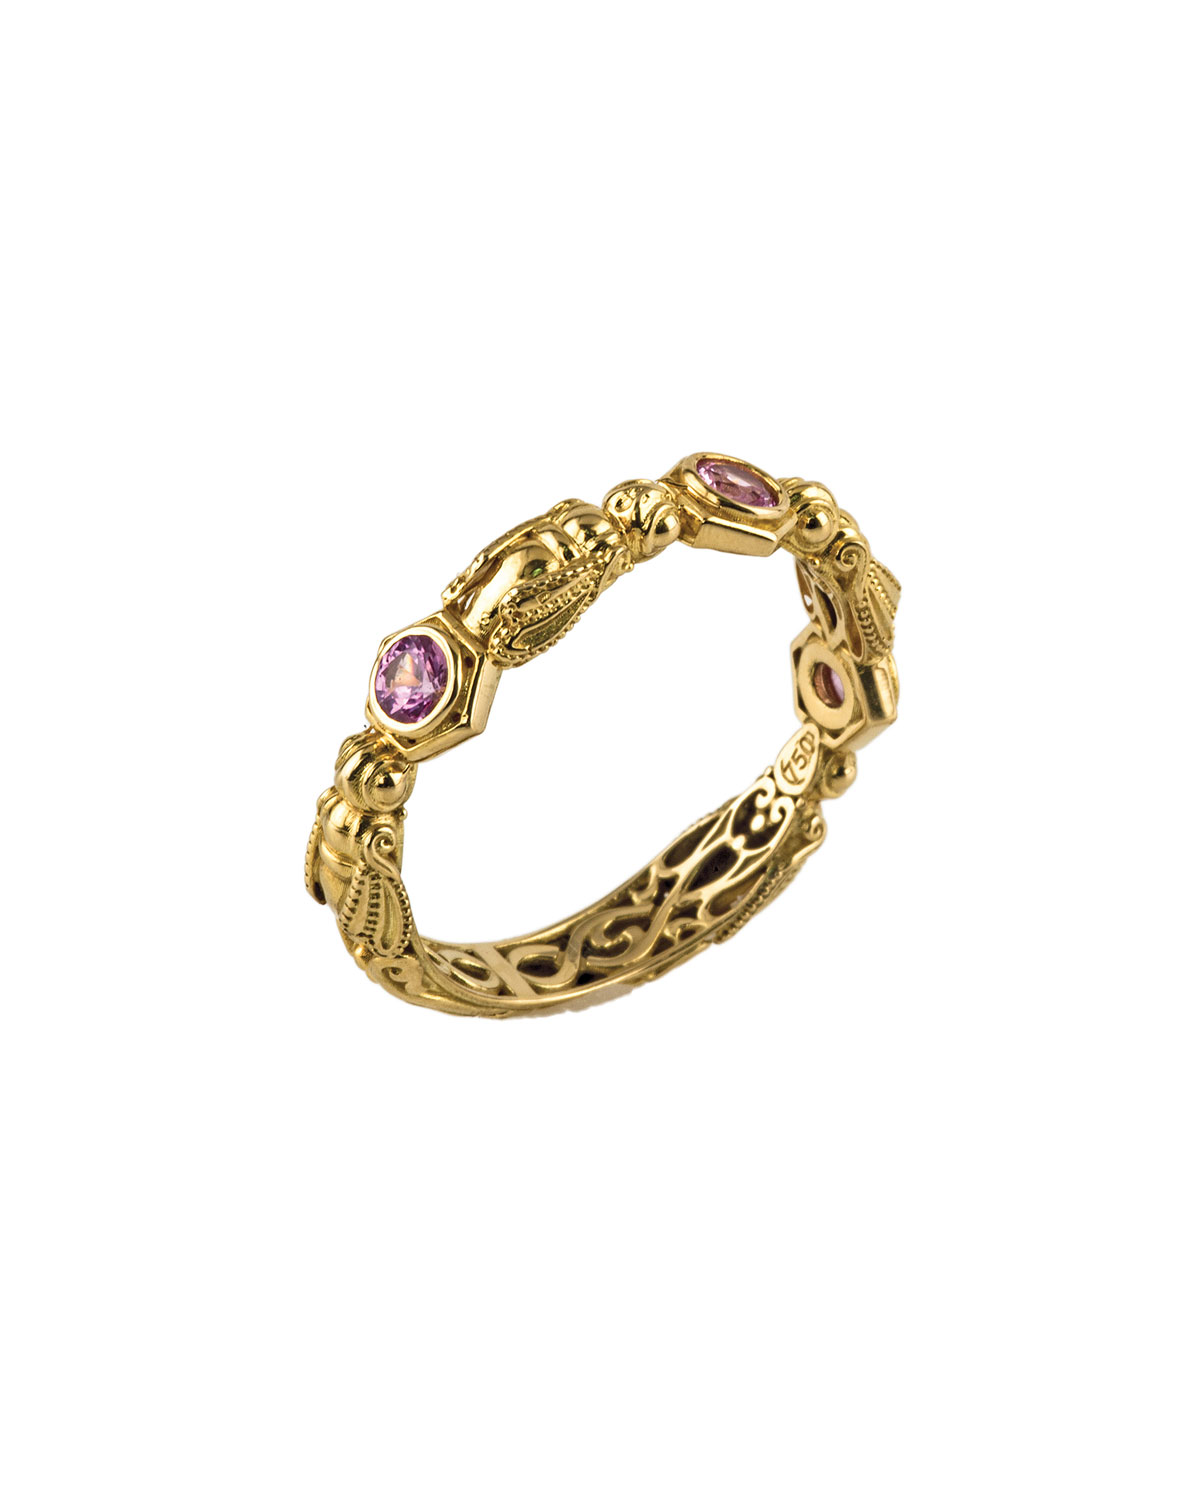 KONSTANTINO 18K YELLOW GOLD BAND RING W/ PINK SAPPHIRES